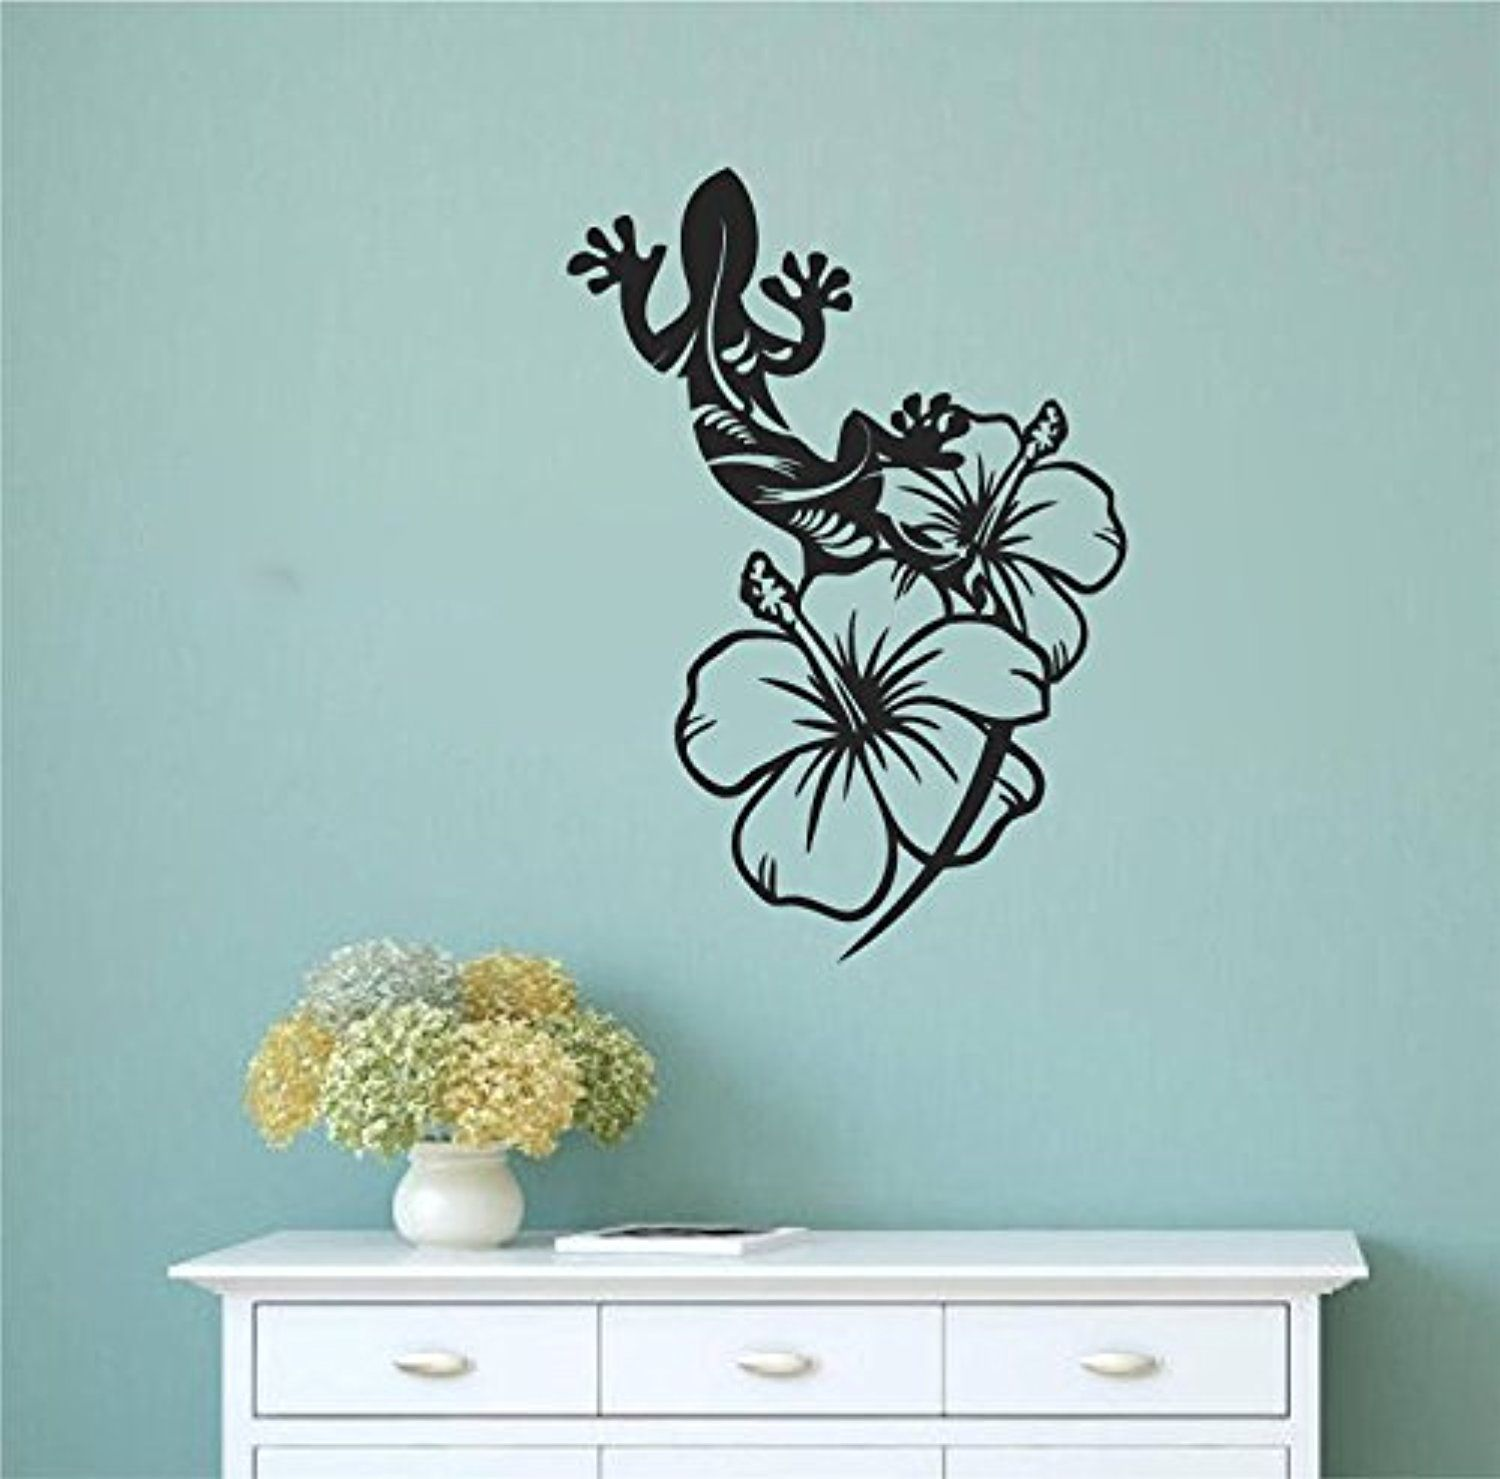 Tropical Gecko Lizard With Hibiscus Flowers Vinyl Wall Decal Sticker Graphic Awesome Products Selected